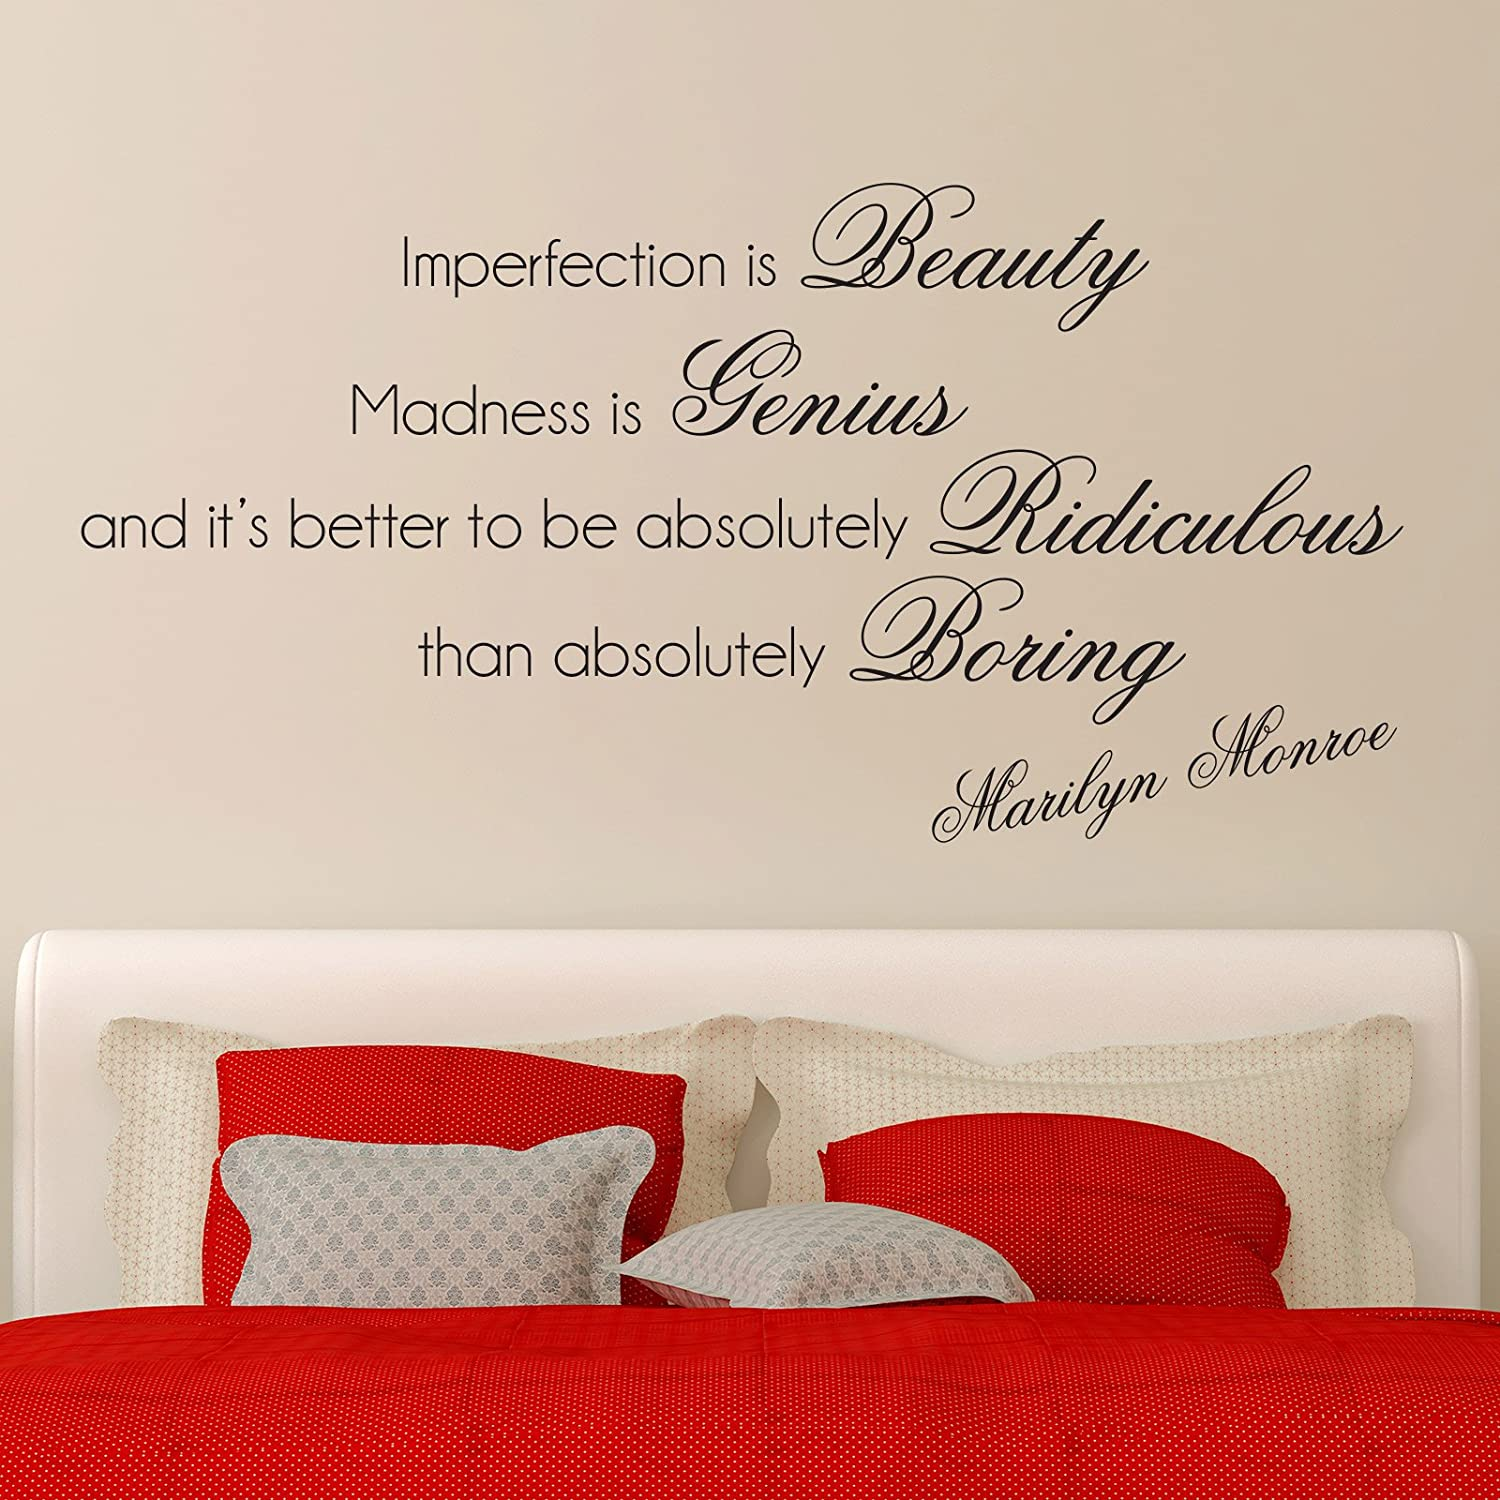 Marilyn Monroe Quote Wall Sticker Art Decal   Imperfection Is Beauty,  Black: Amazon.co.uk: Kitchen U0026 Home Part 37